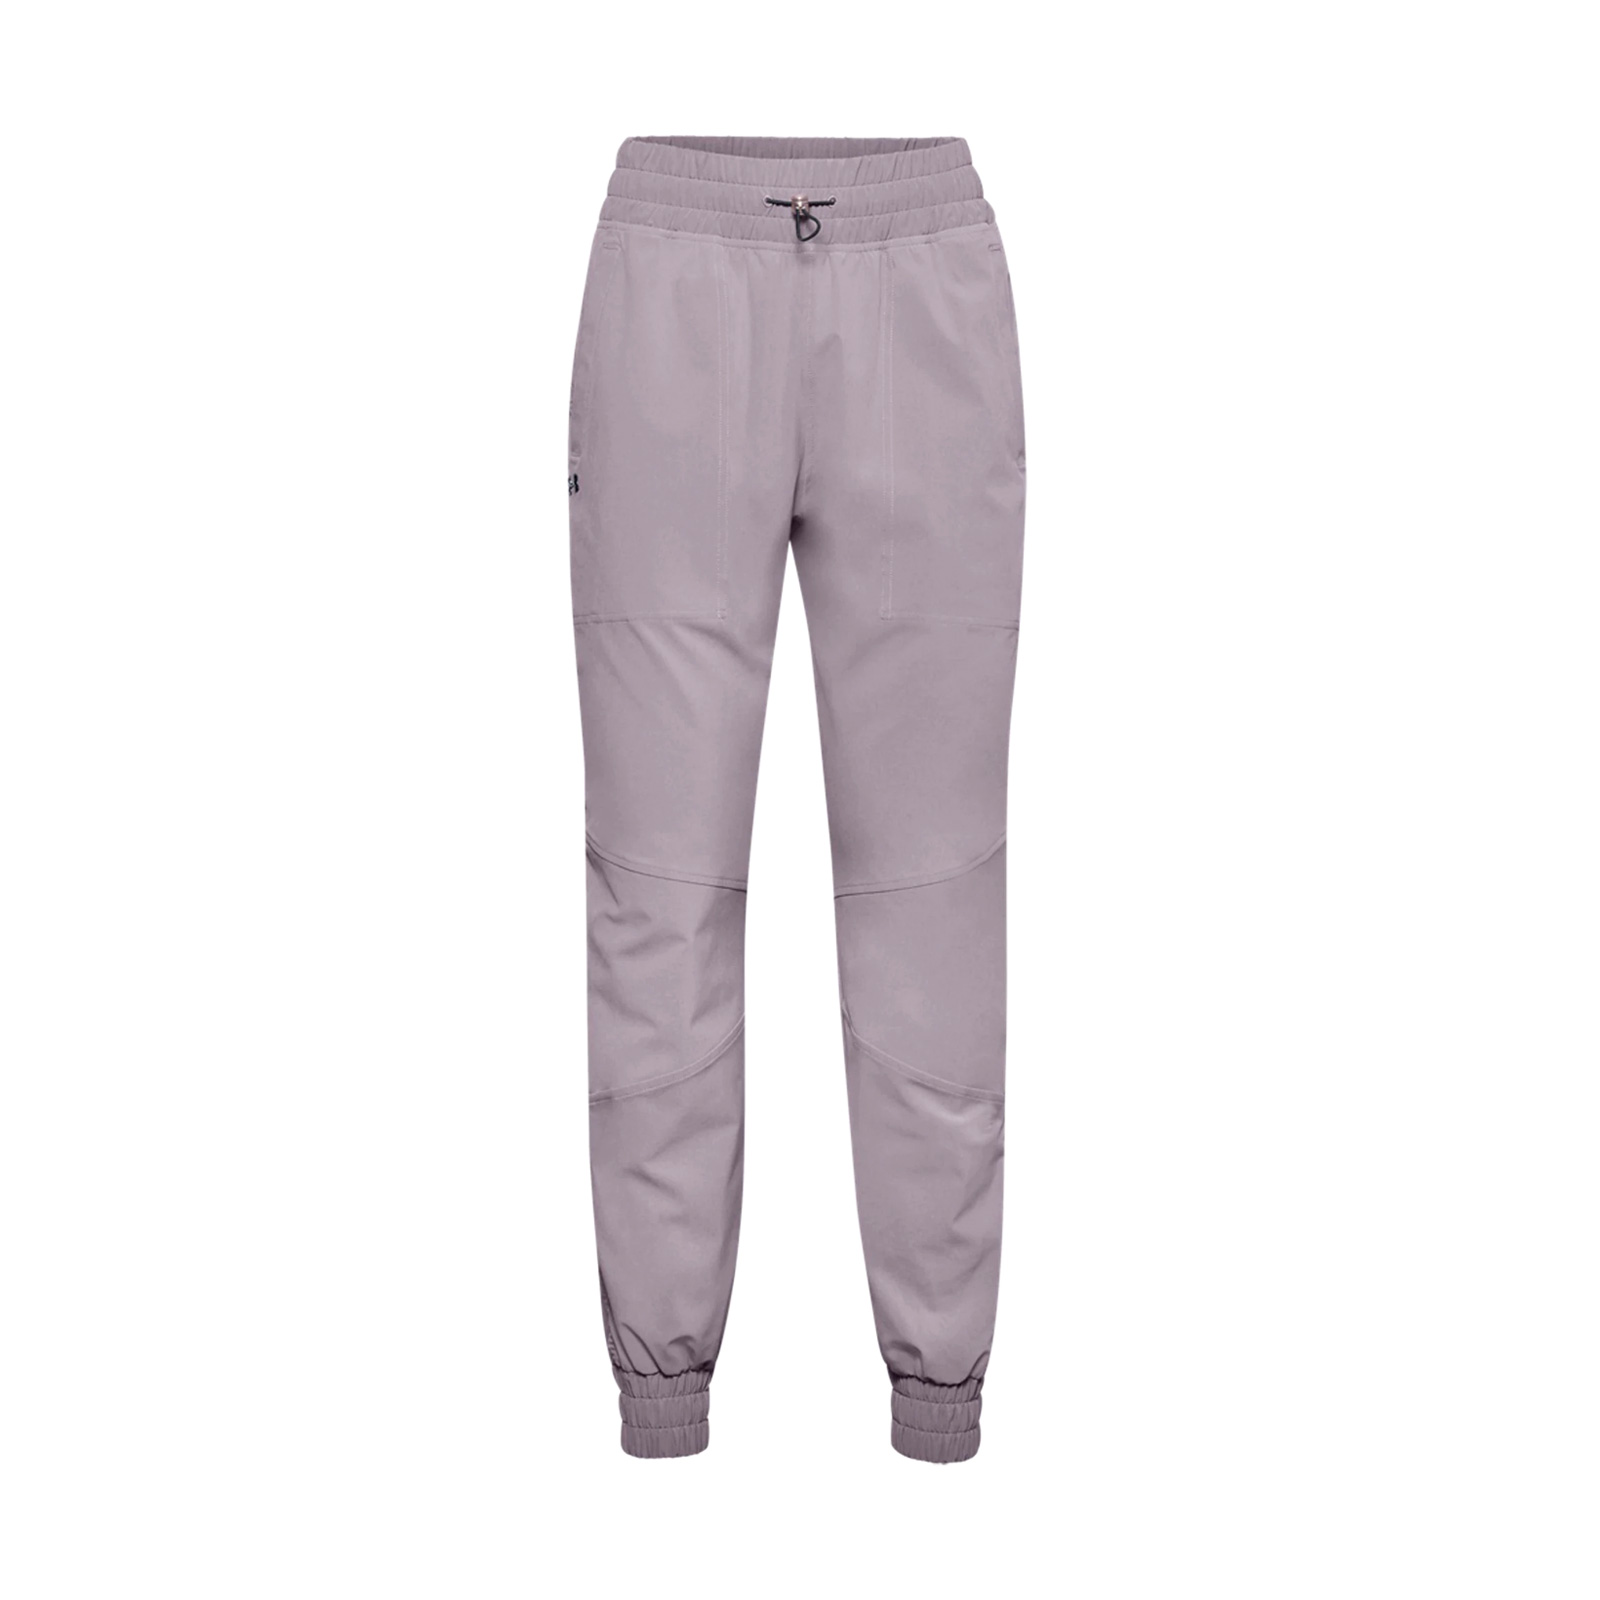 Under Armour - 1351914 RECOVER WOVEN PANTS PA - 585/Y871